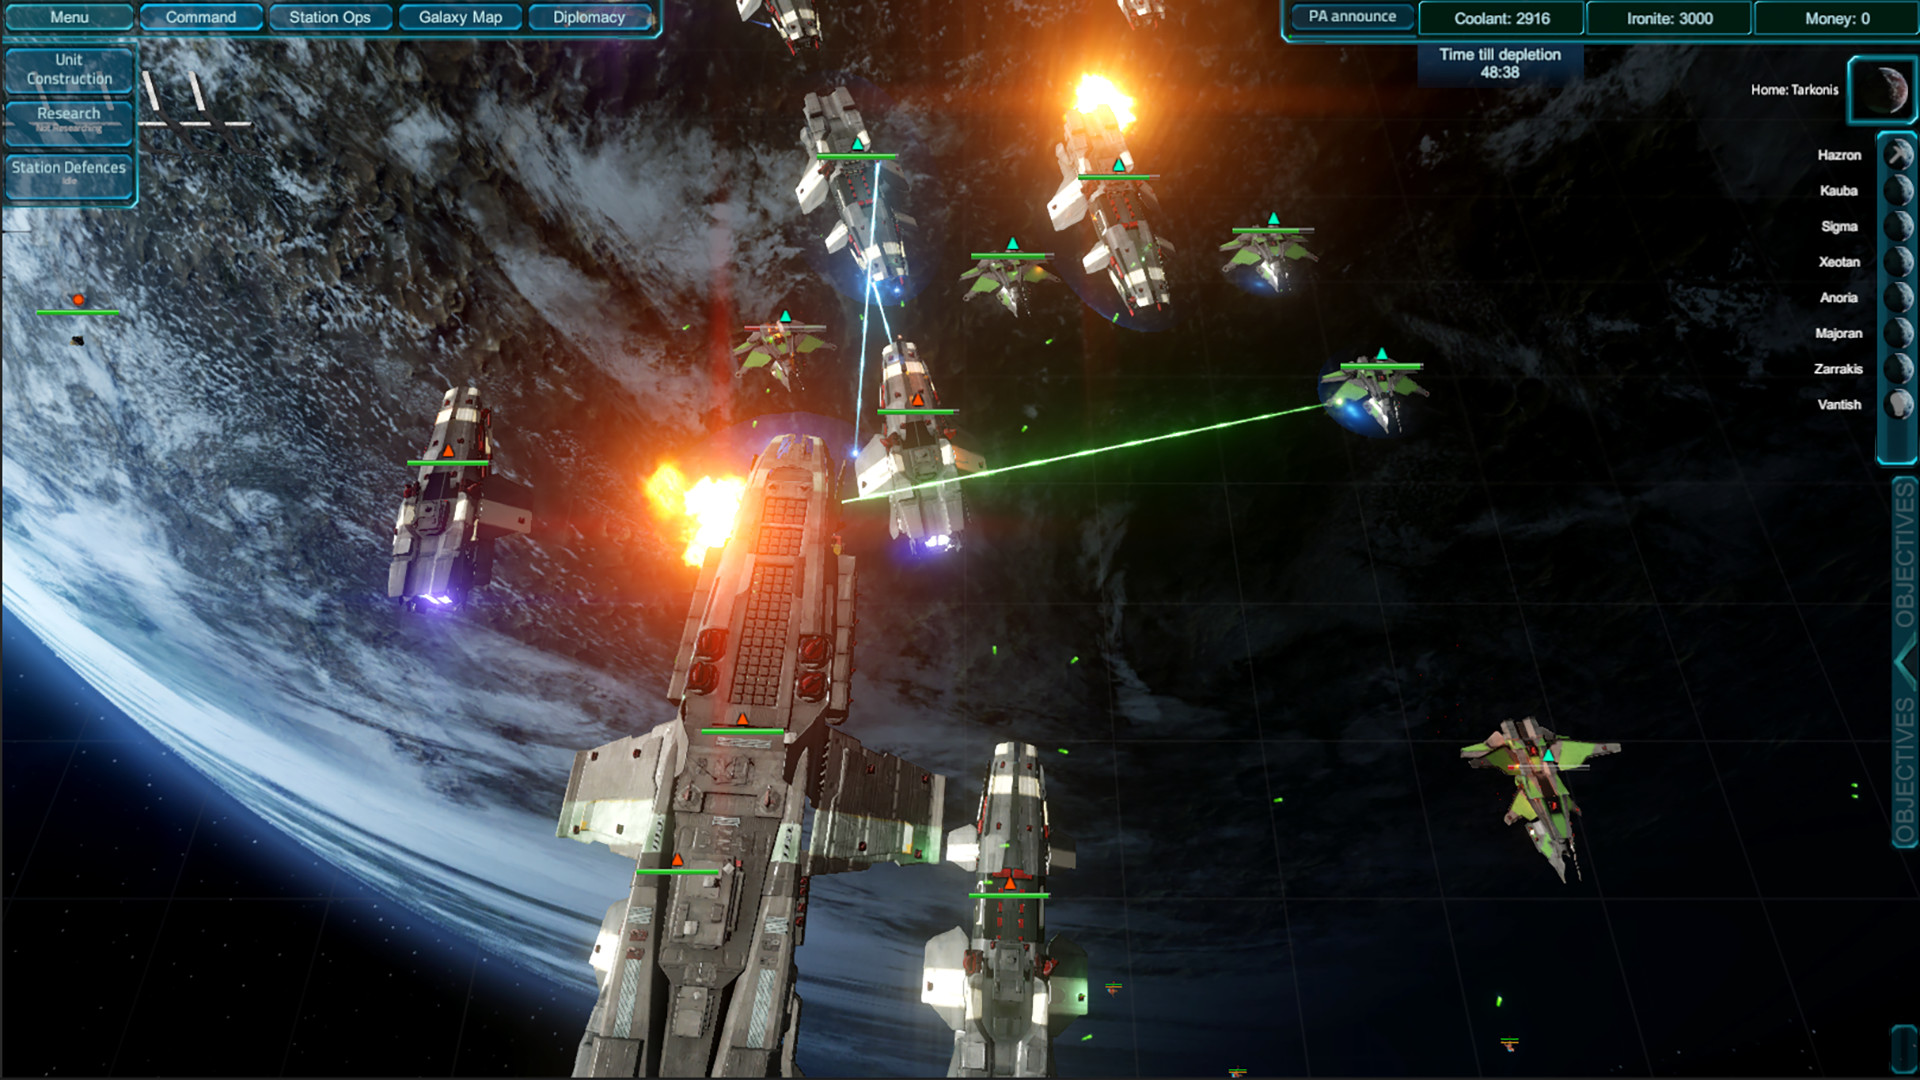 Space RTS/FPS Executive Assault 2 enters Early Access